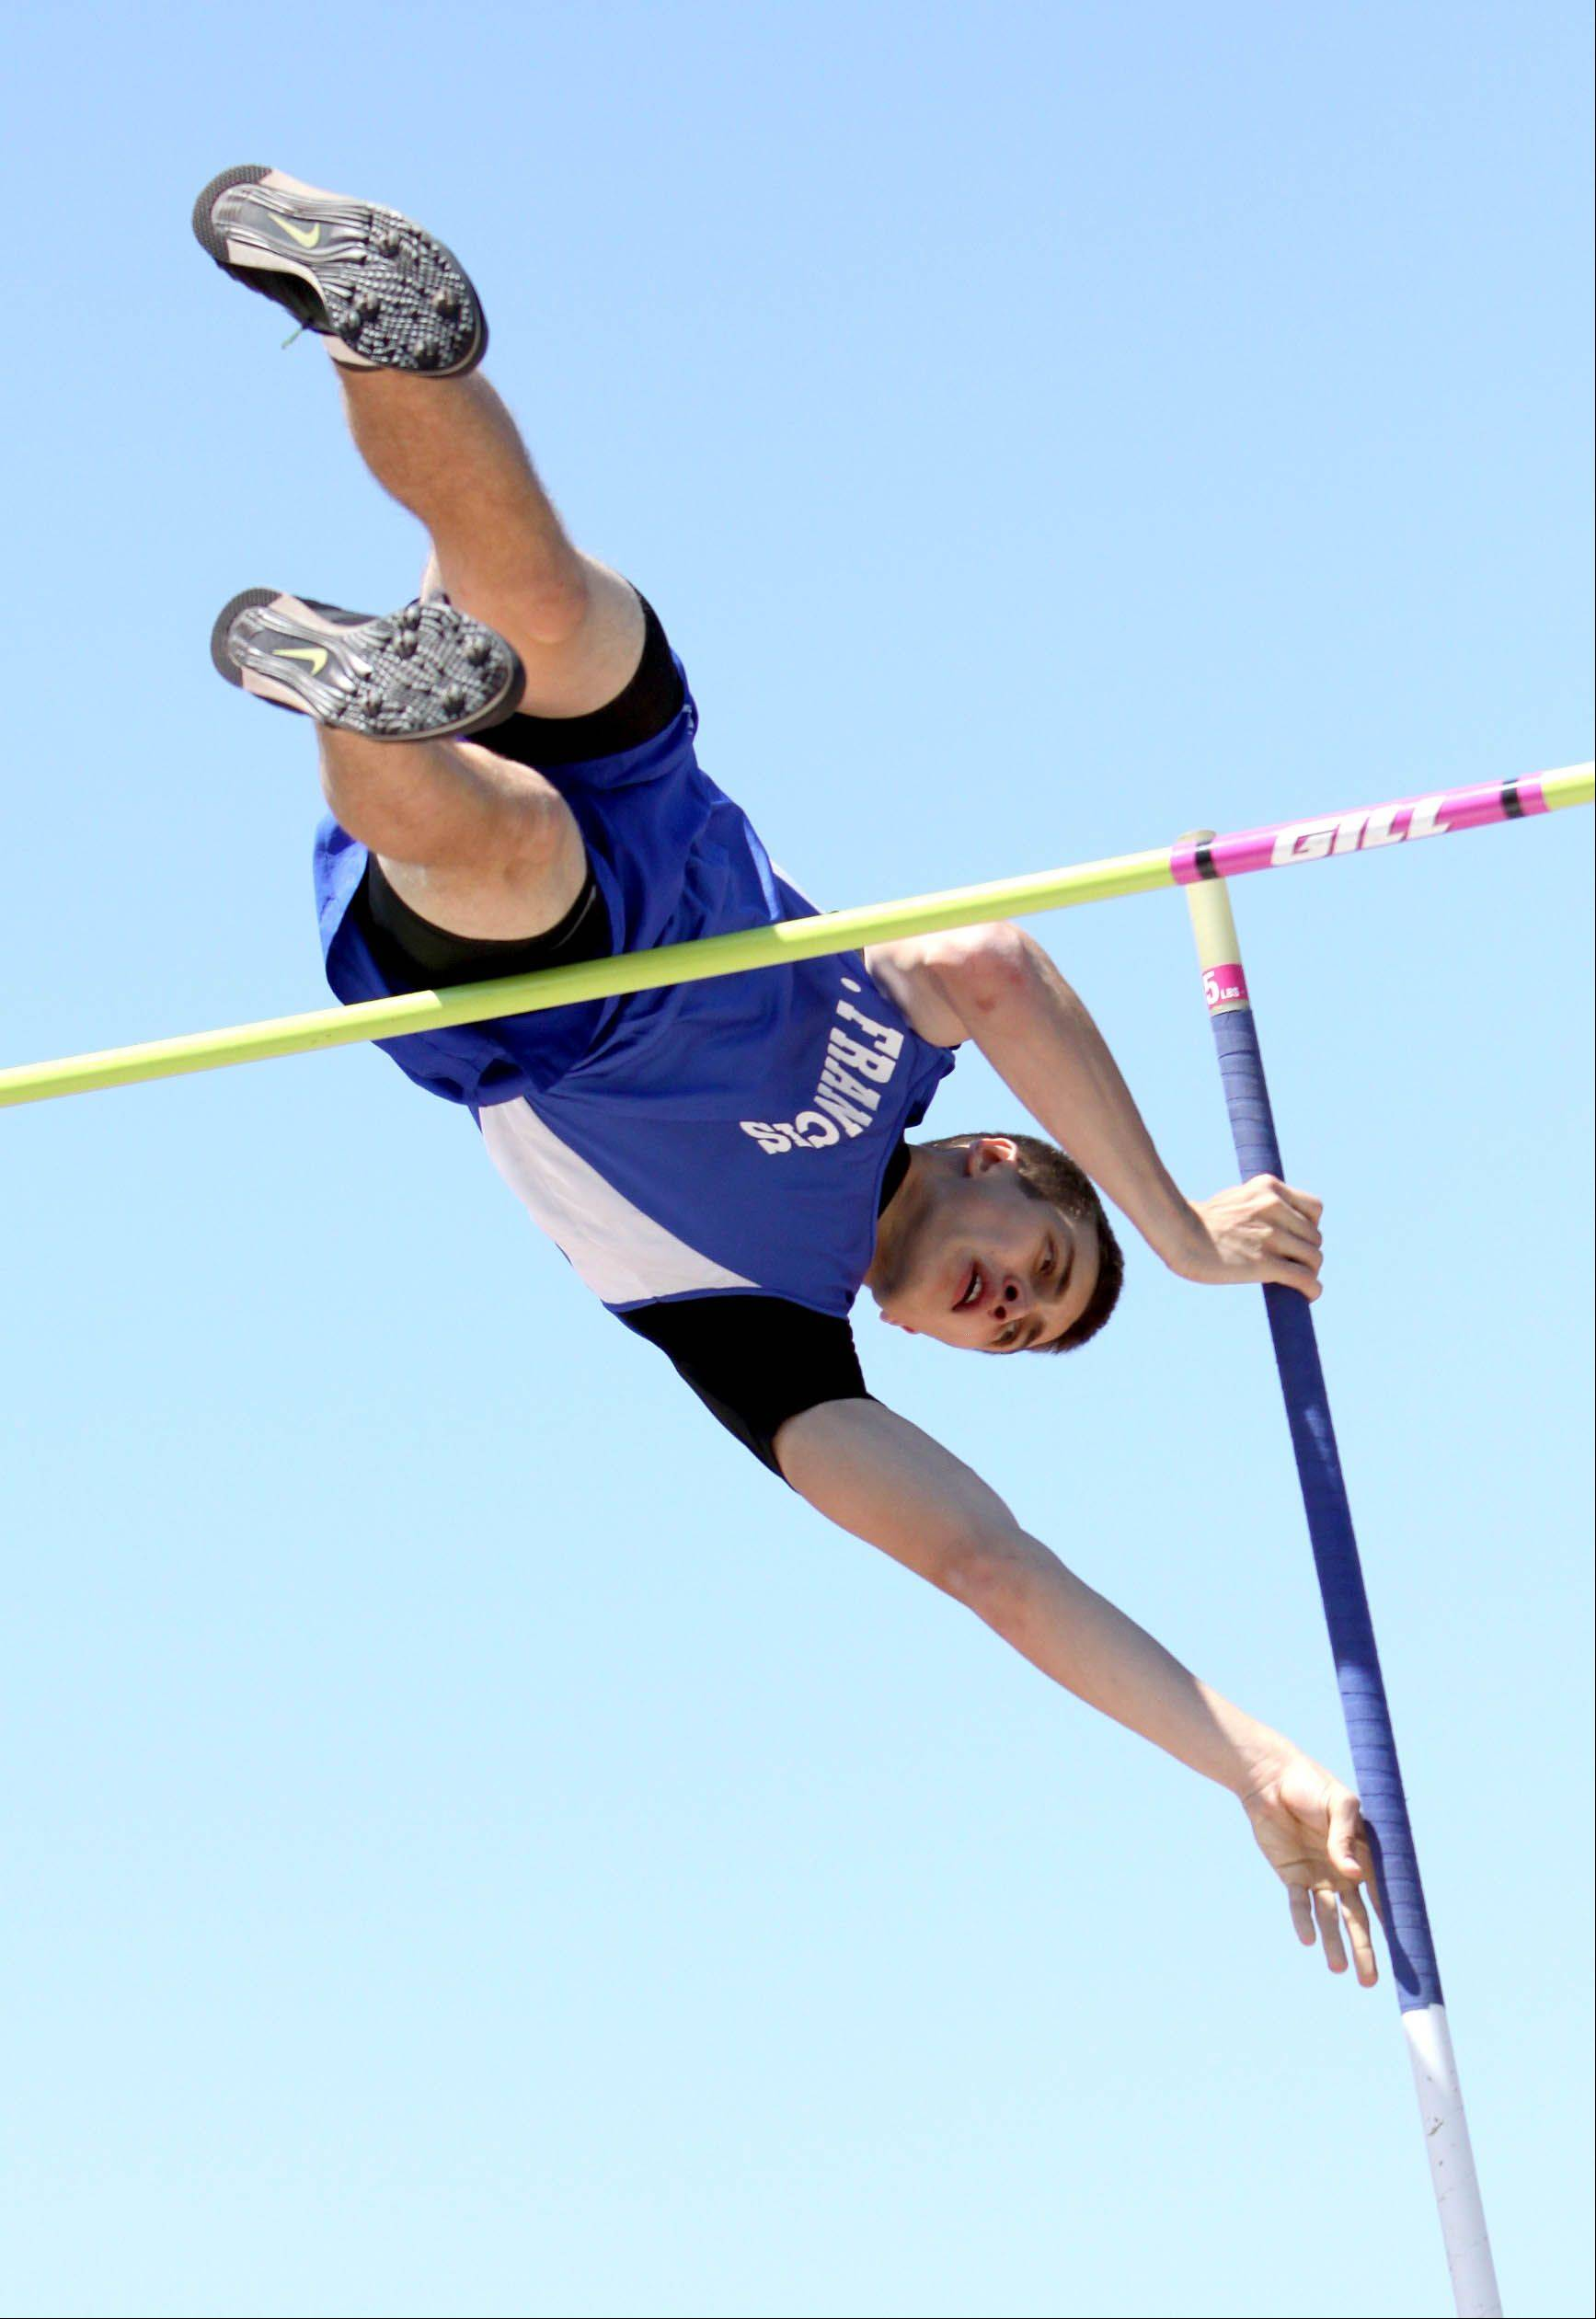 St. Francis' Mike Wilson competes in the pole vault during Class 2A boys track sectional finals on Thursday in River Forest.